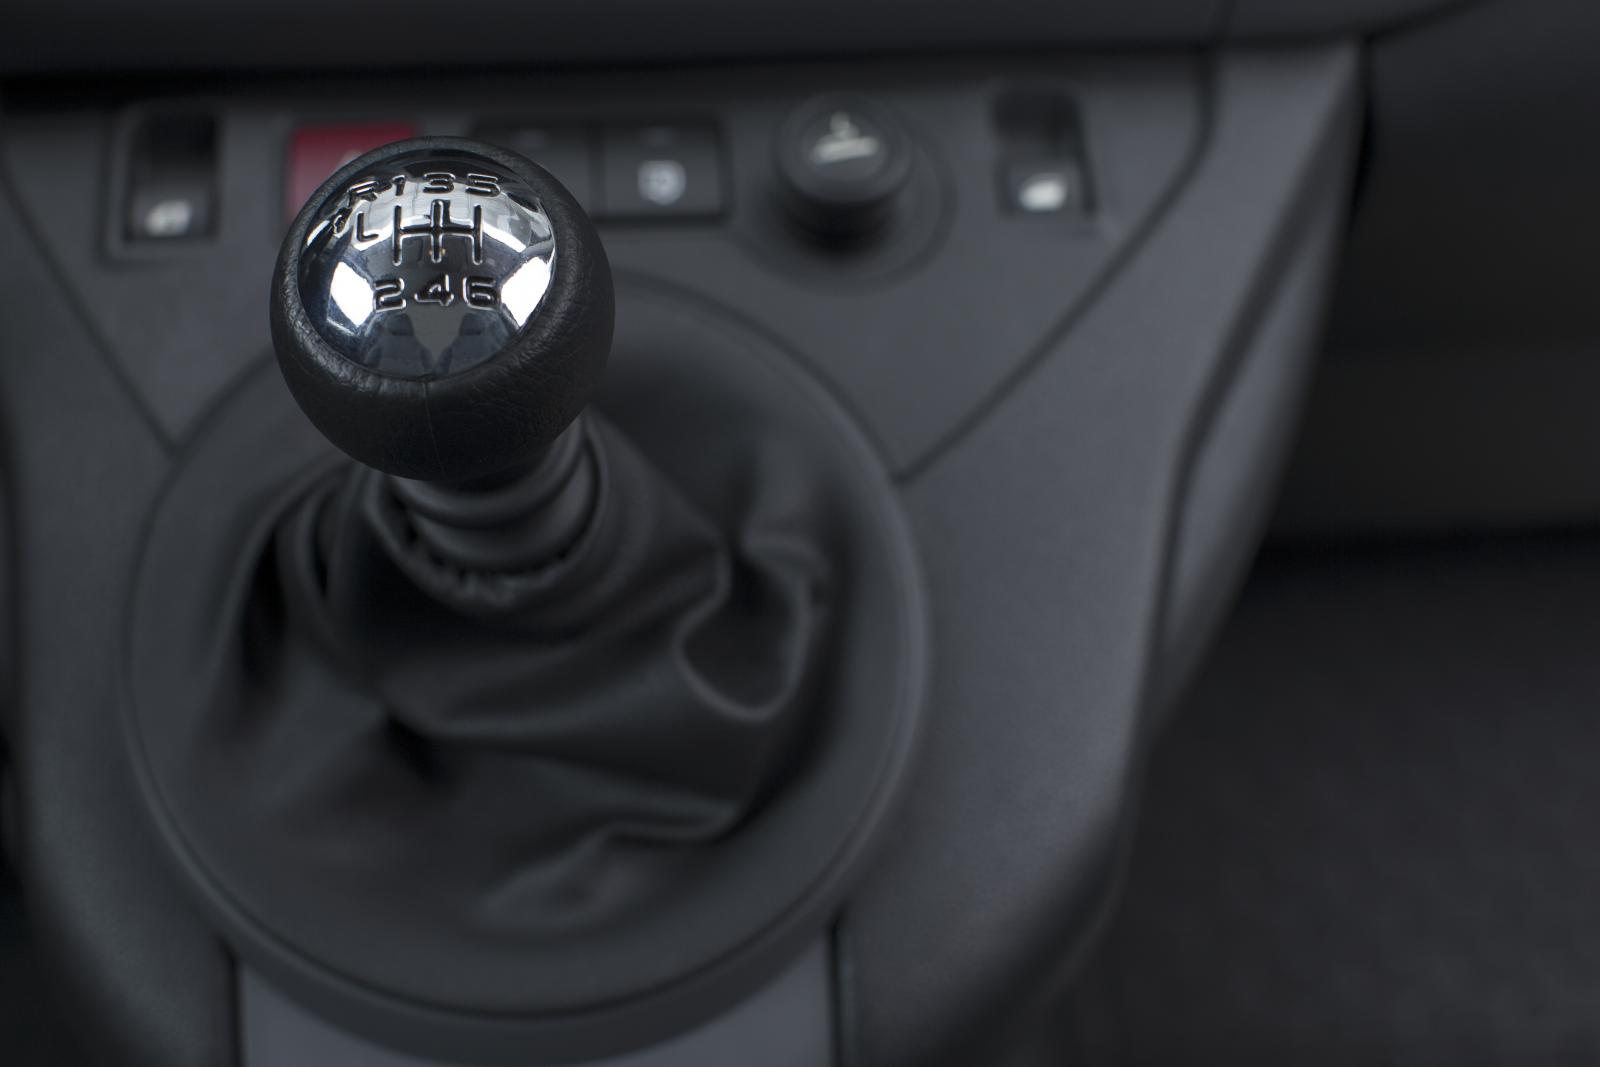 Berlingo 2 gear lever